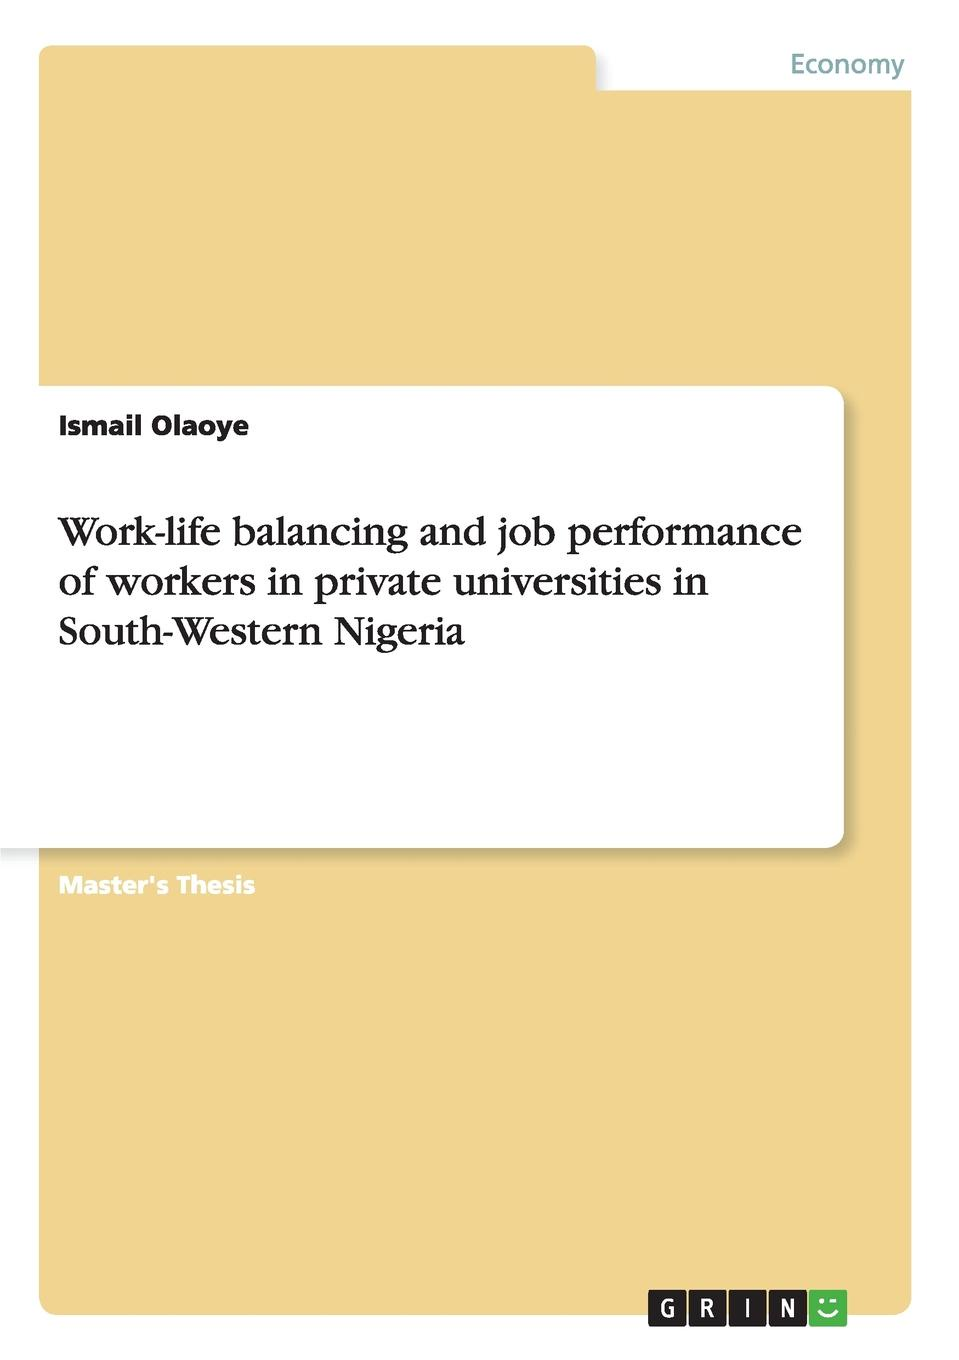 Ismail Olaoye Work-life balancing and job performance of workers in private universities in South-Western Nigeria apicultural practices in nigeria